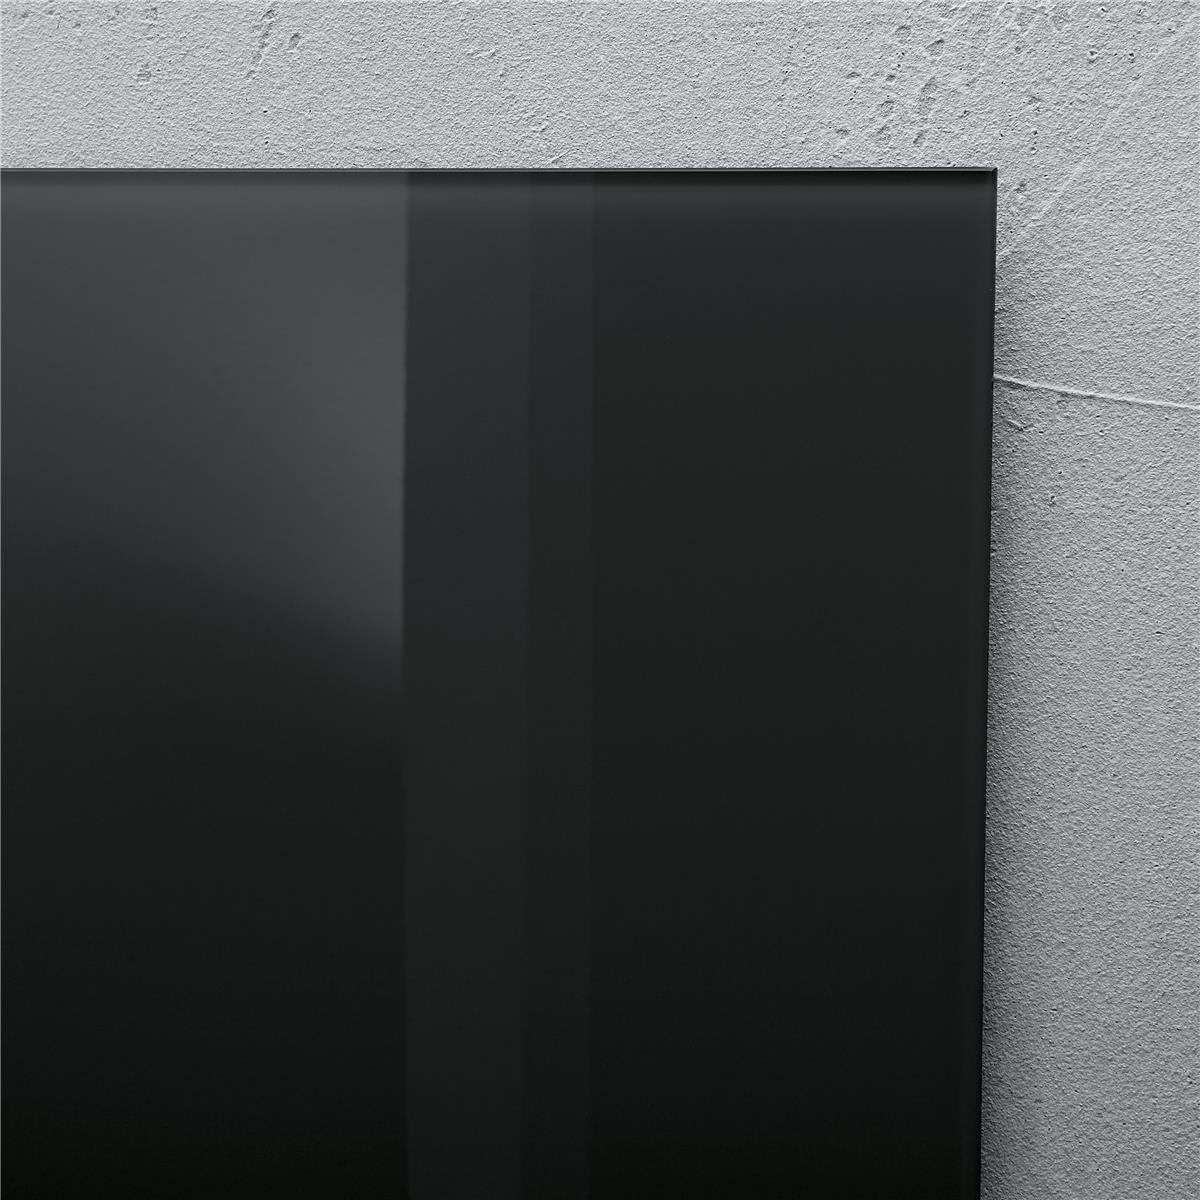 Sigel Artverum High Quality Tempered Glass Magnetic Board With Fixings 1000x650mm Black Ref GL140